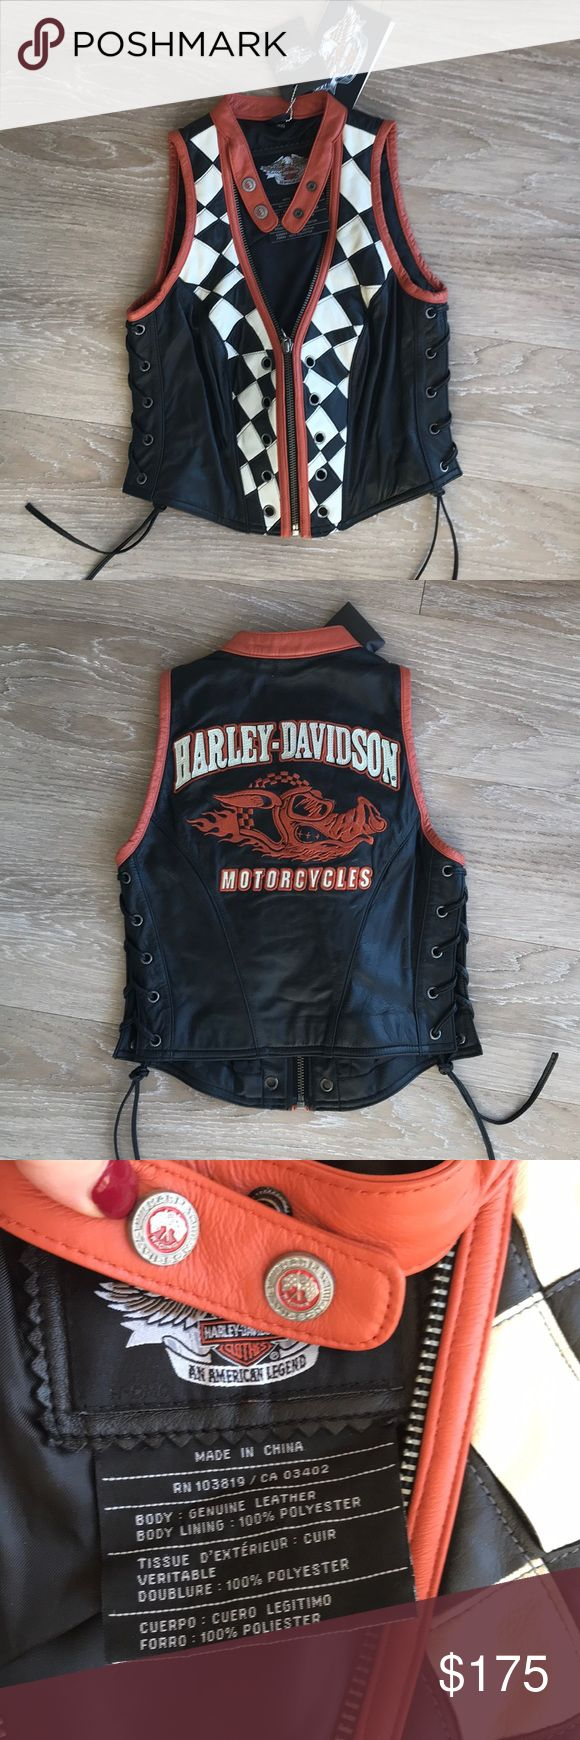 Harley Davidson Vest In great condition! Brand new Make me an offer. No trades. Smoke free home. 10% off bundle of 3 or more! ❤️😄 Harley-Davidson Jackets & Coats Vests